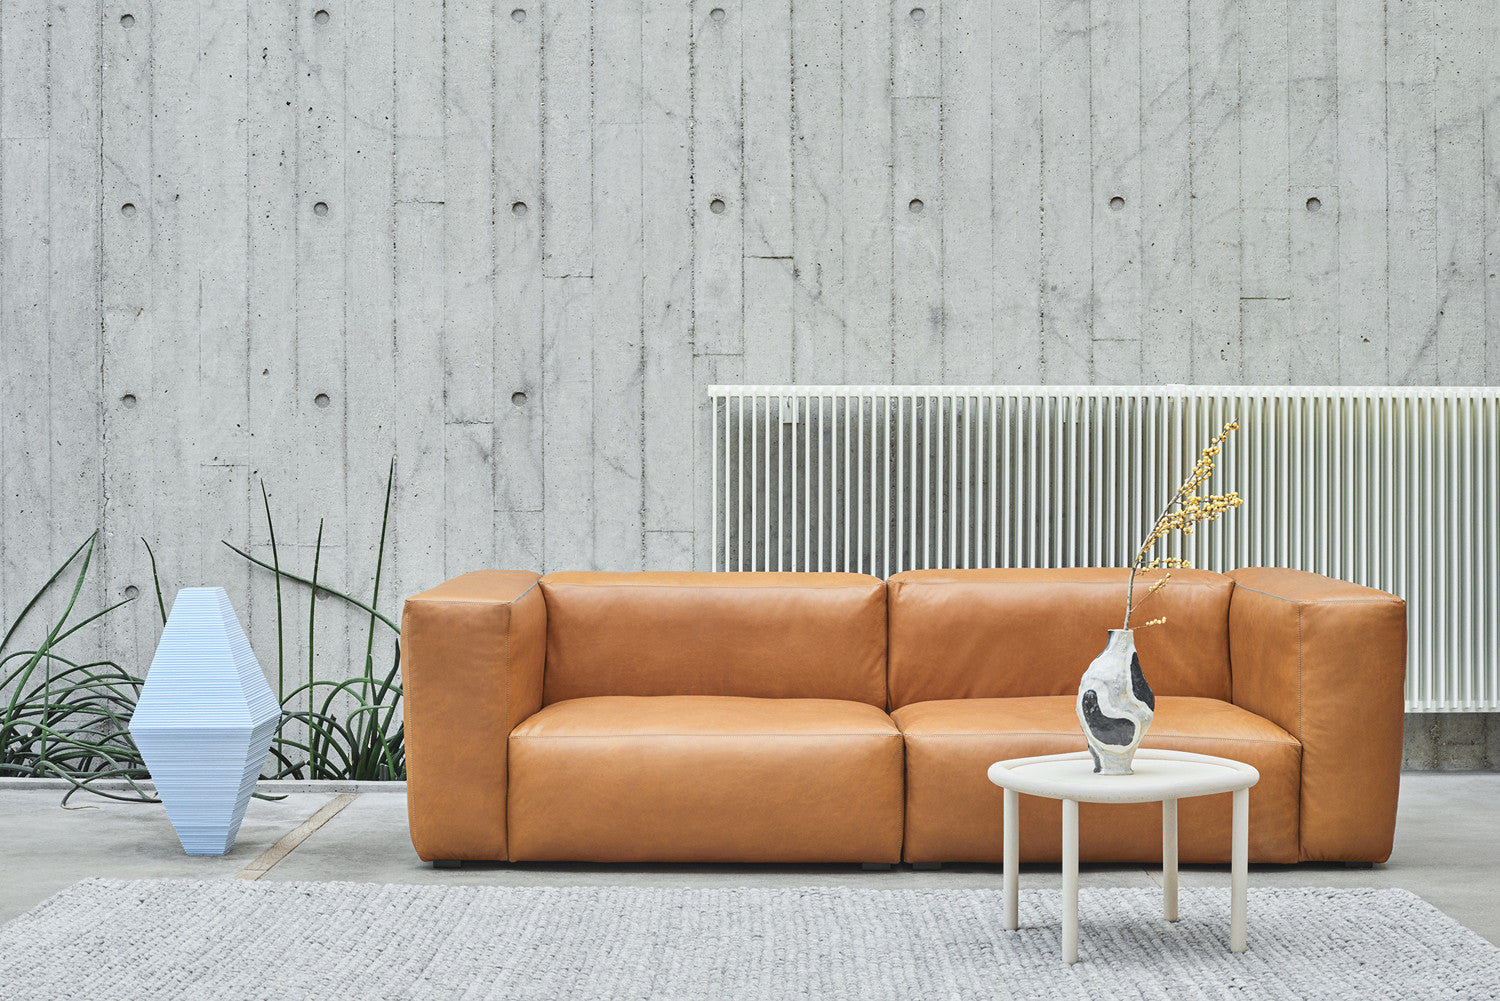 Mags Sofa Hay : Mags soft sofa two and a half seater couch potato company